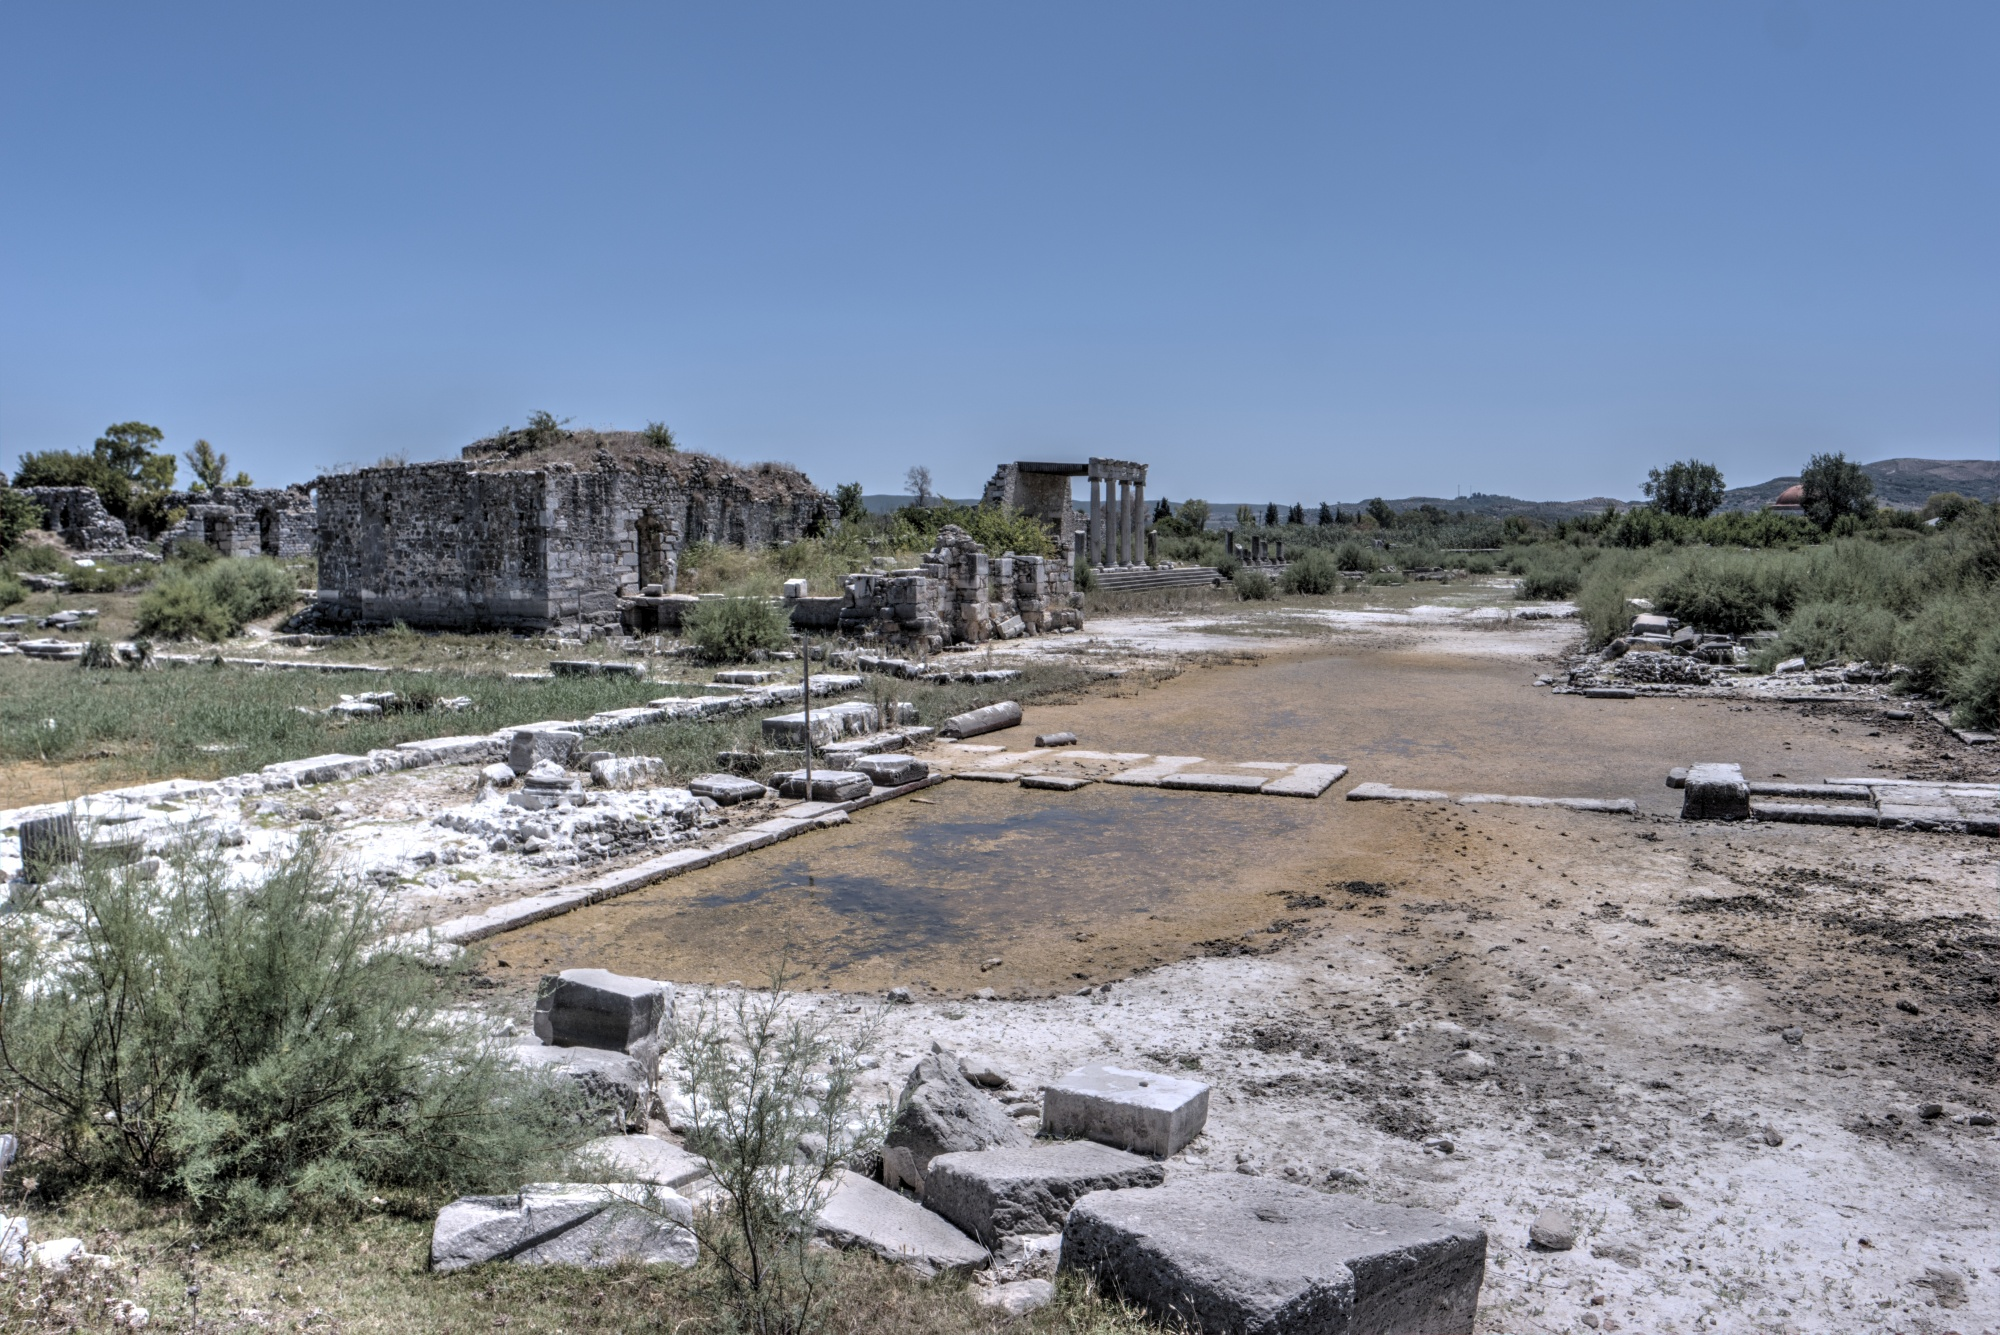 The view from the Harbour Gate to the North Agora in Miletus